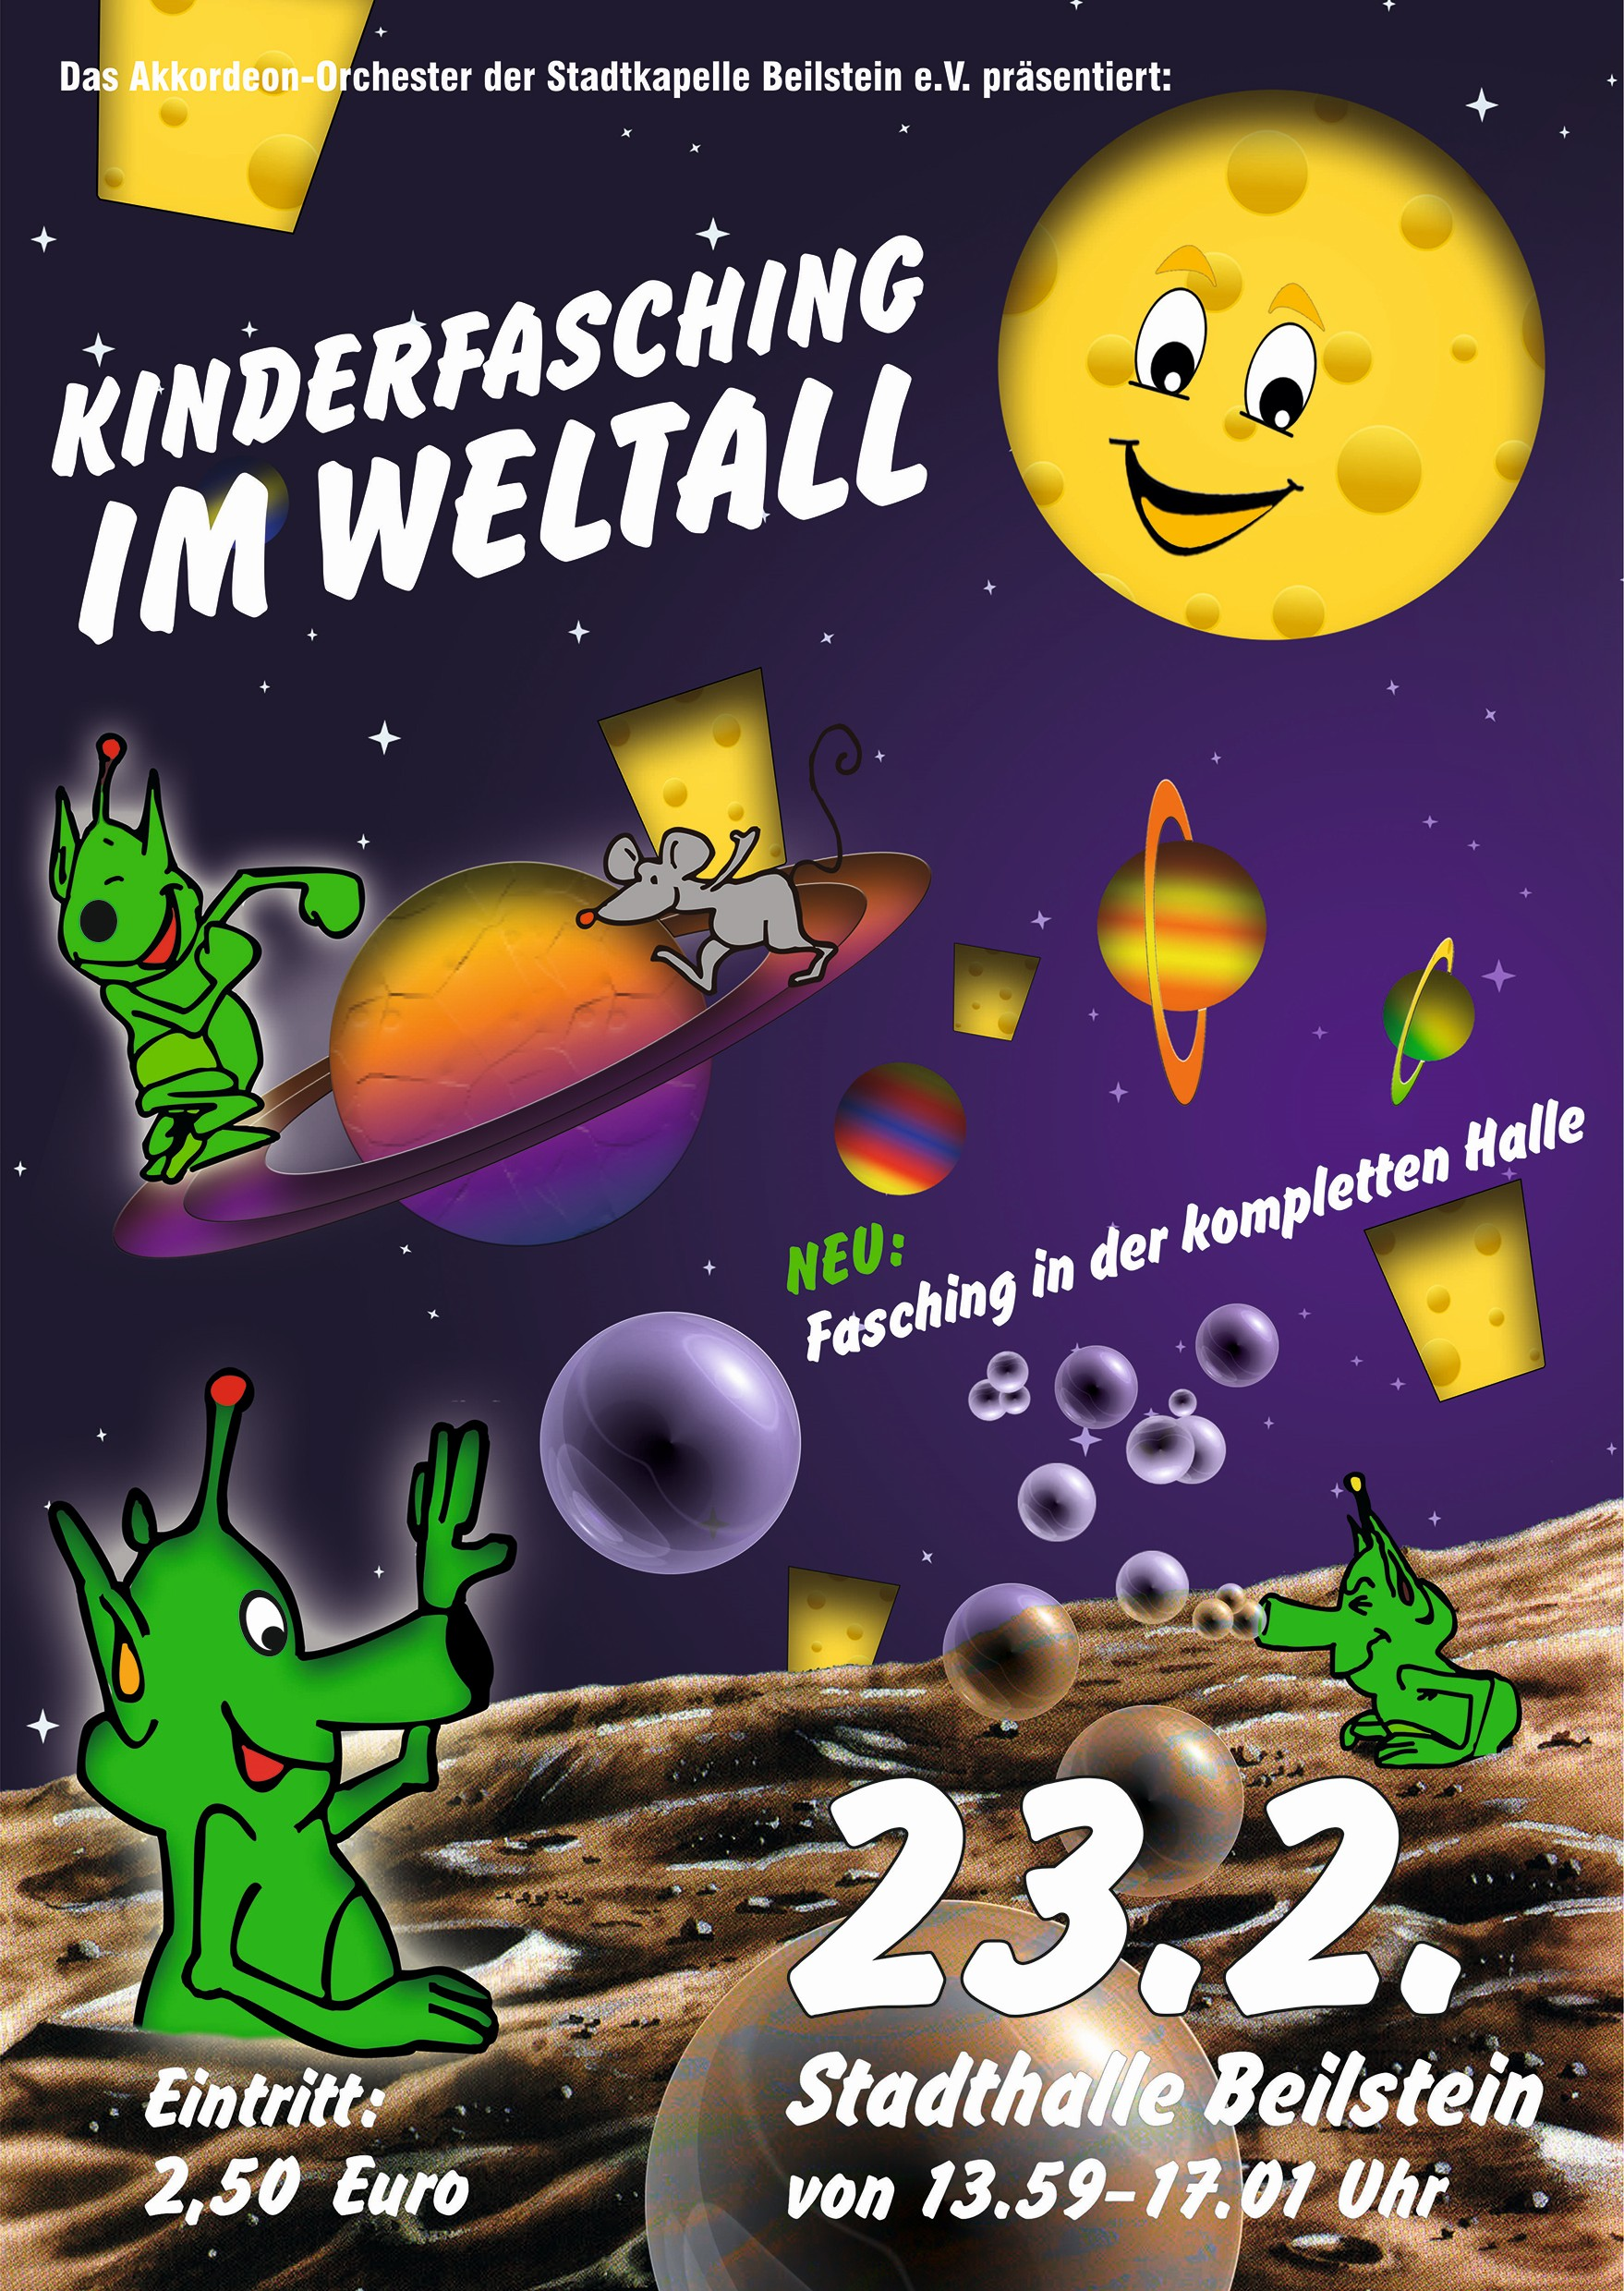 Kinderfasching 2019 - 1